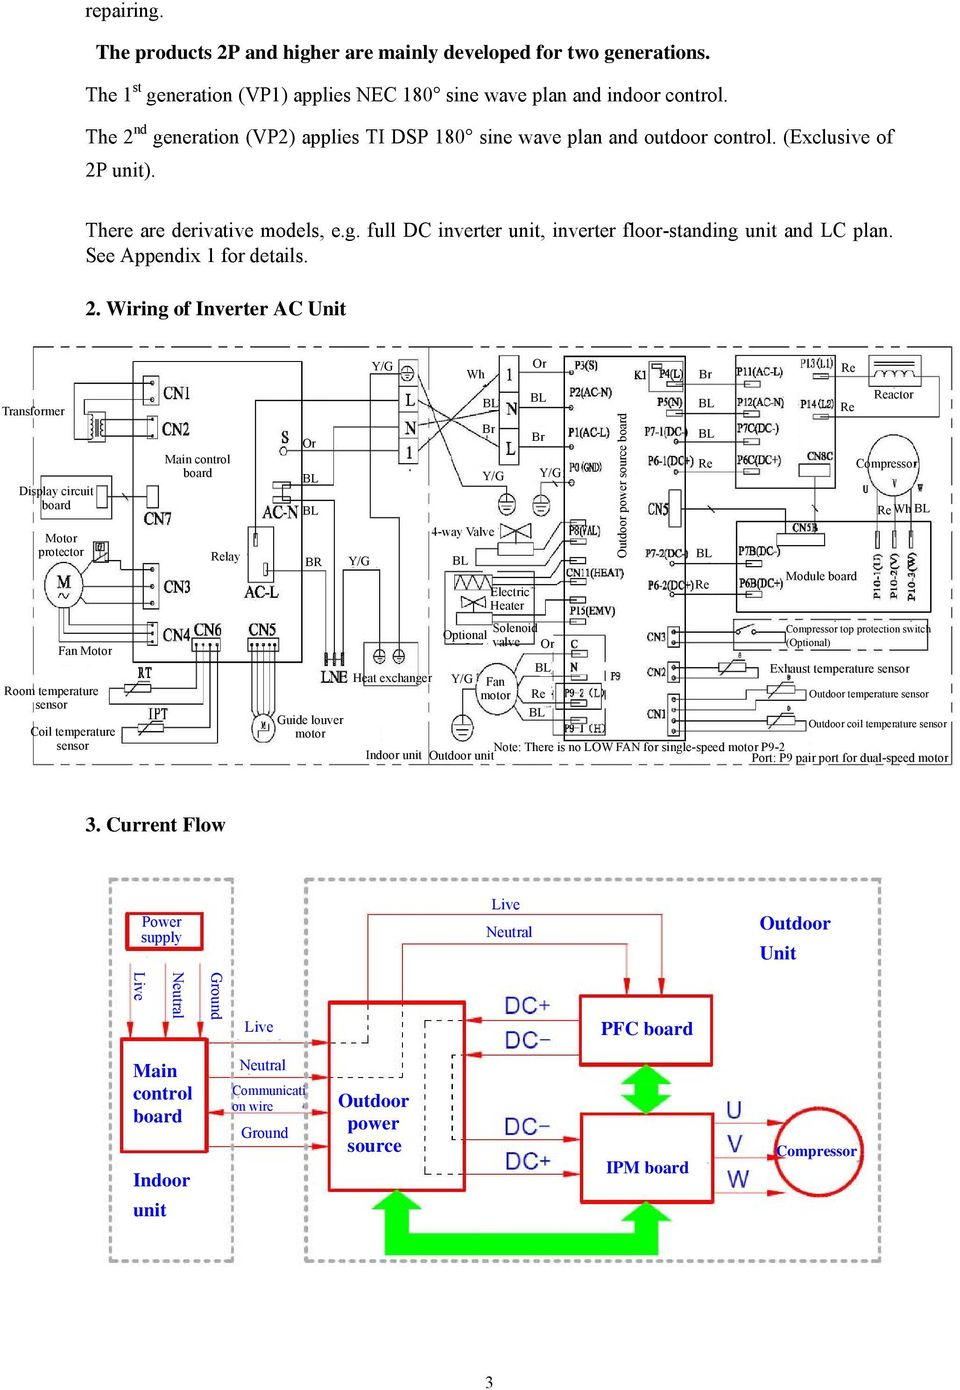 Repair Guideline For Tcl Dc Inverter Air Conditioner Pdf Electronical Circuit Board Buy Midea See Appendix 1 Details 2 5 4 Computer Control Function Flow Chart Ac